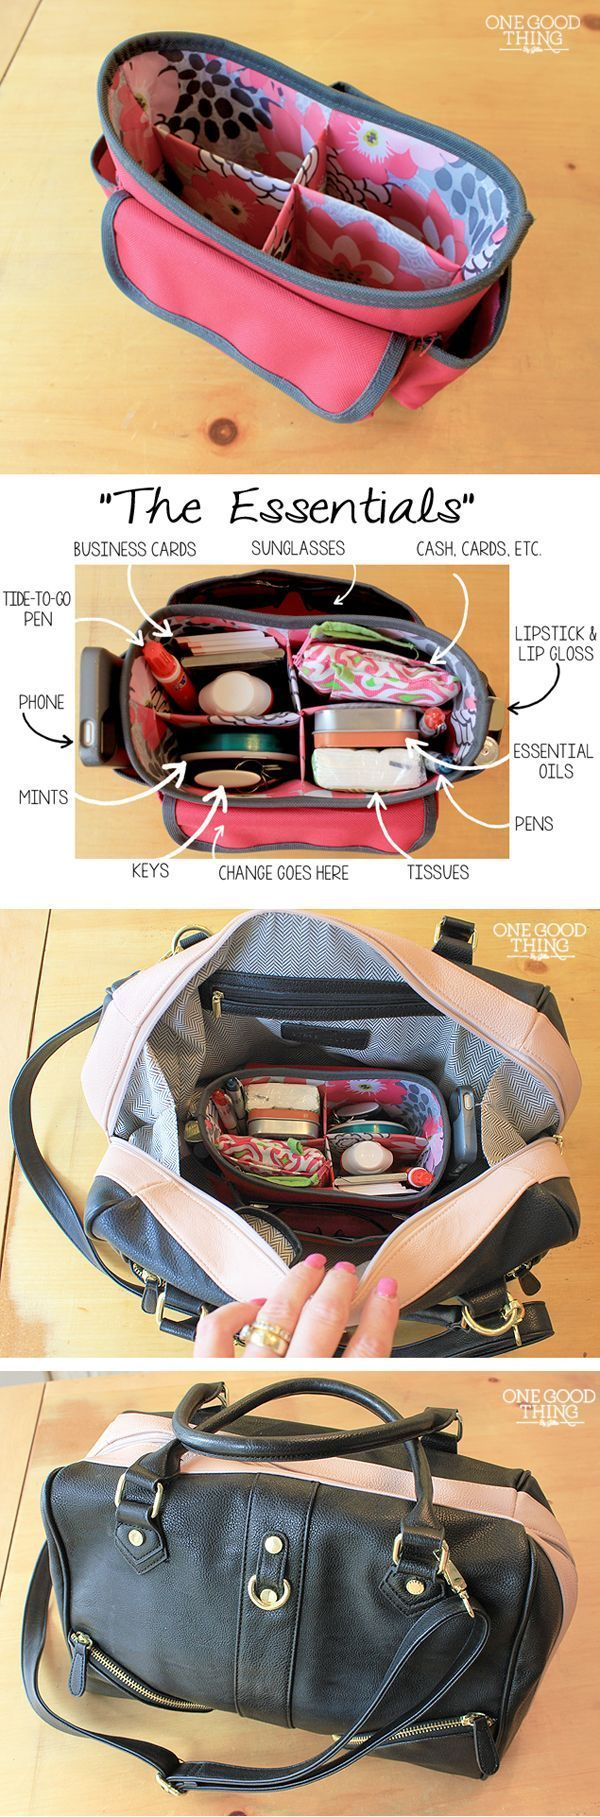 How To Switch Purses Quickly With A Purse Organizer